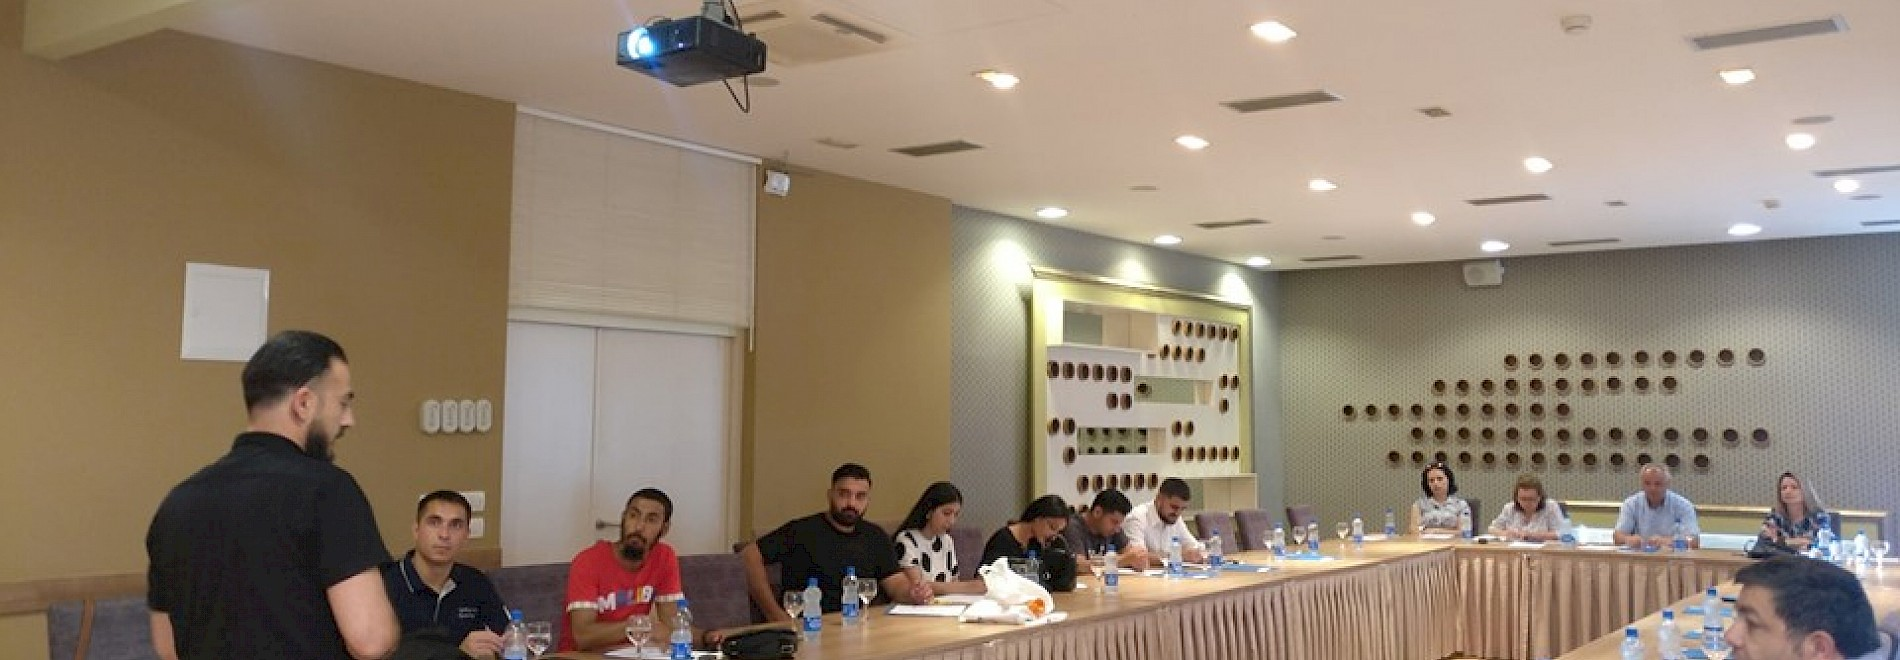 "Advocacy initiative in the form of lecture ""understanding and prevention of hate speech, discrimination and stereotypes """